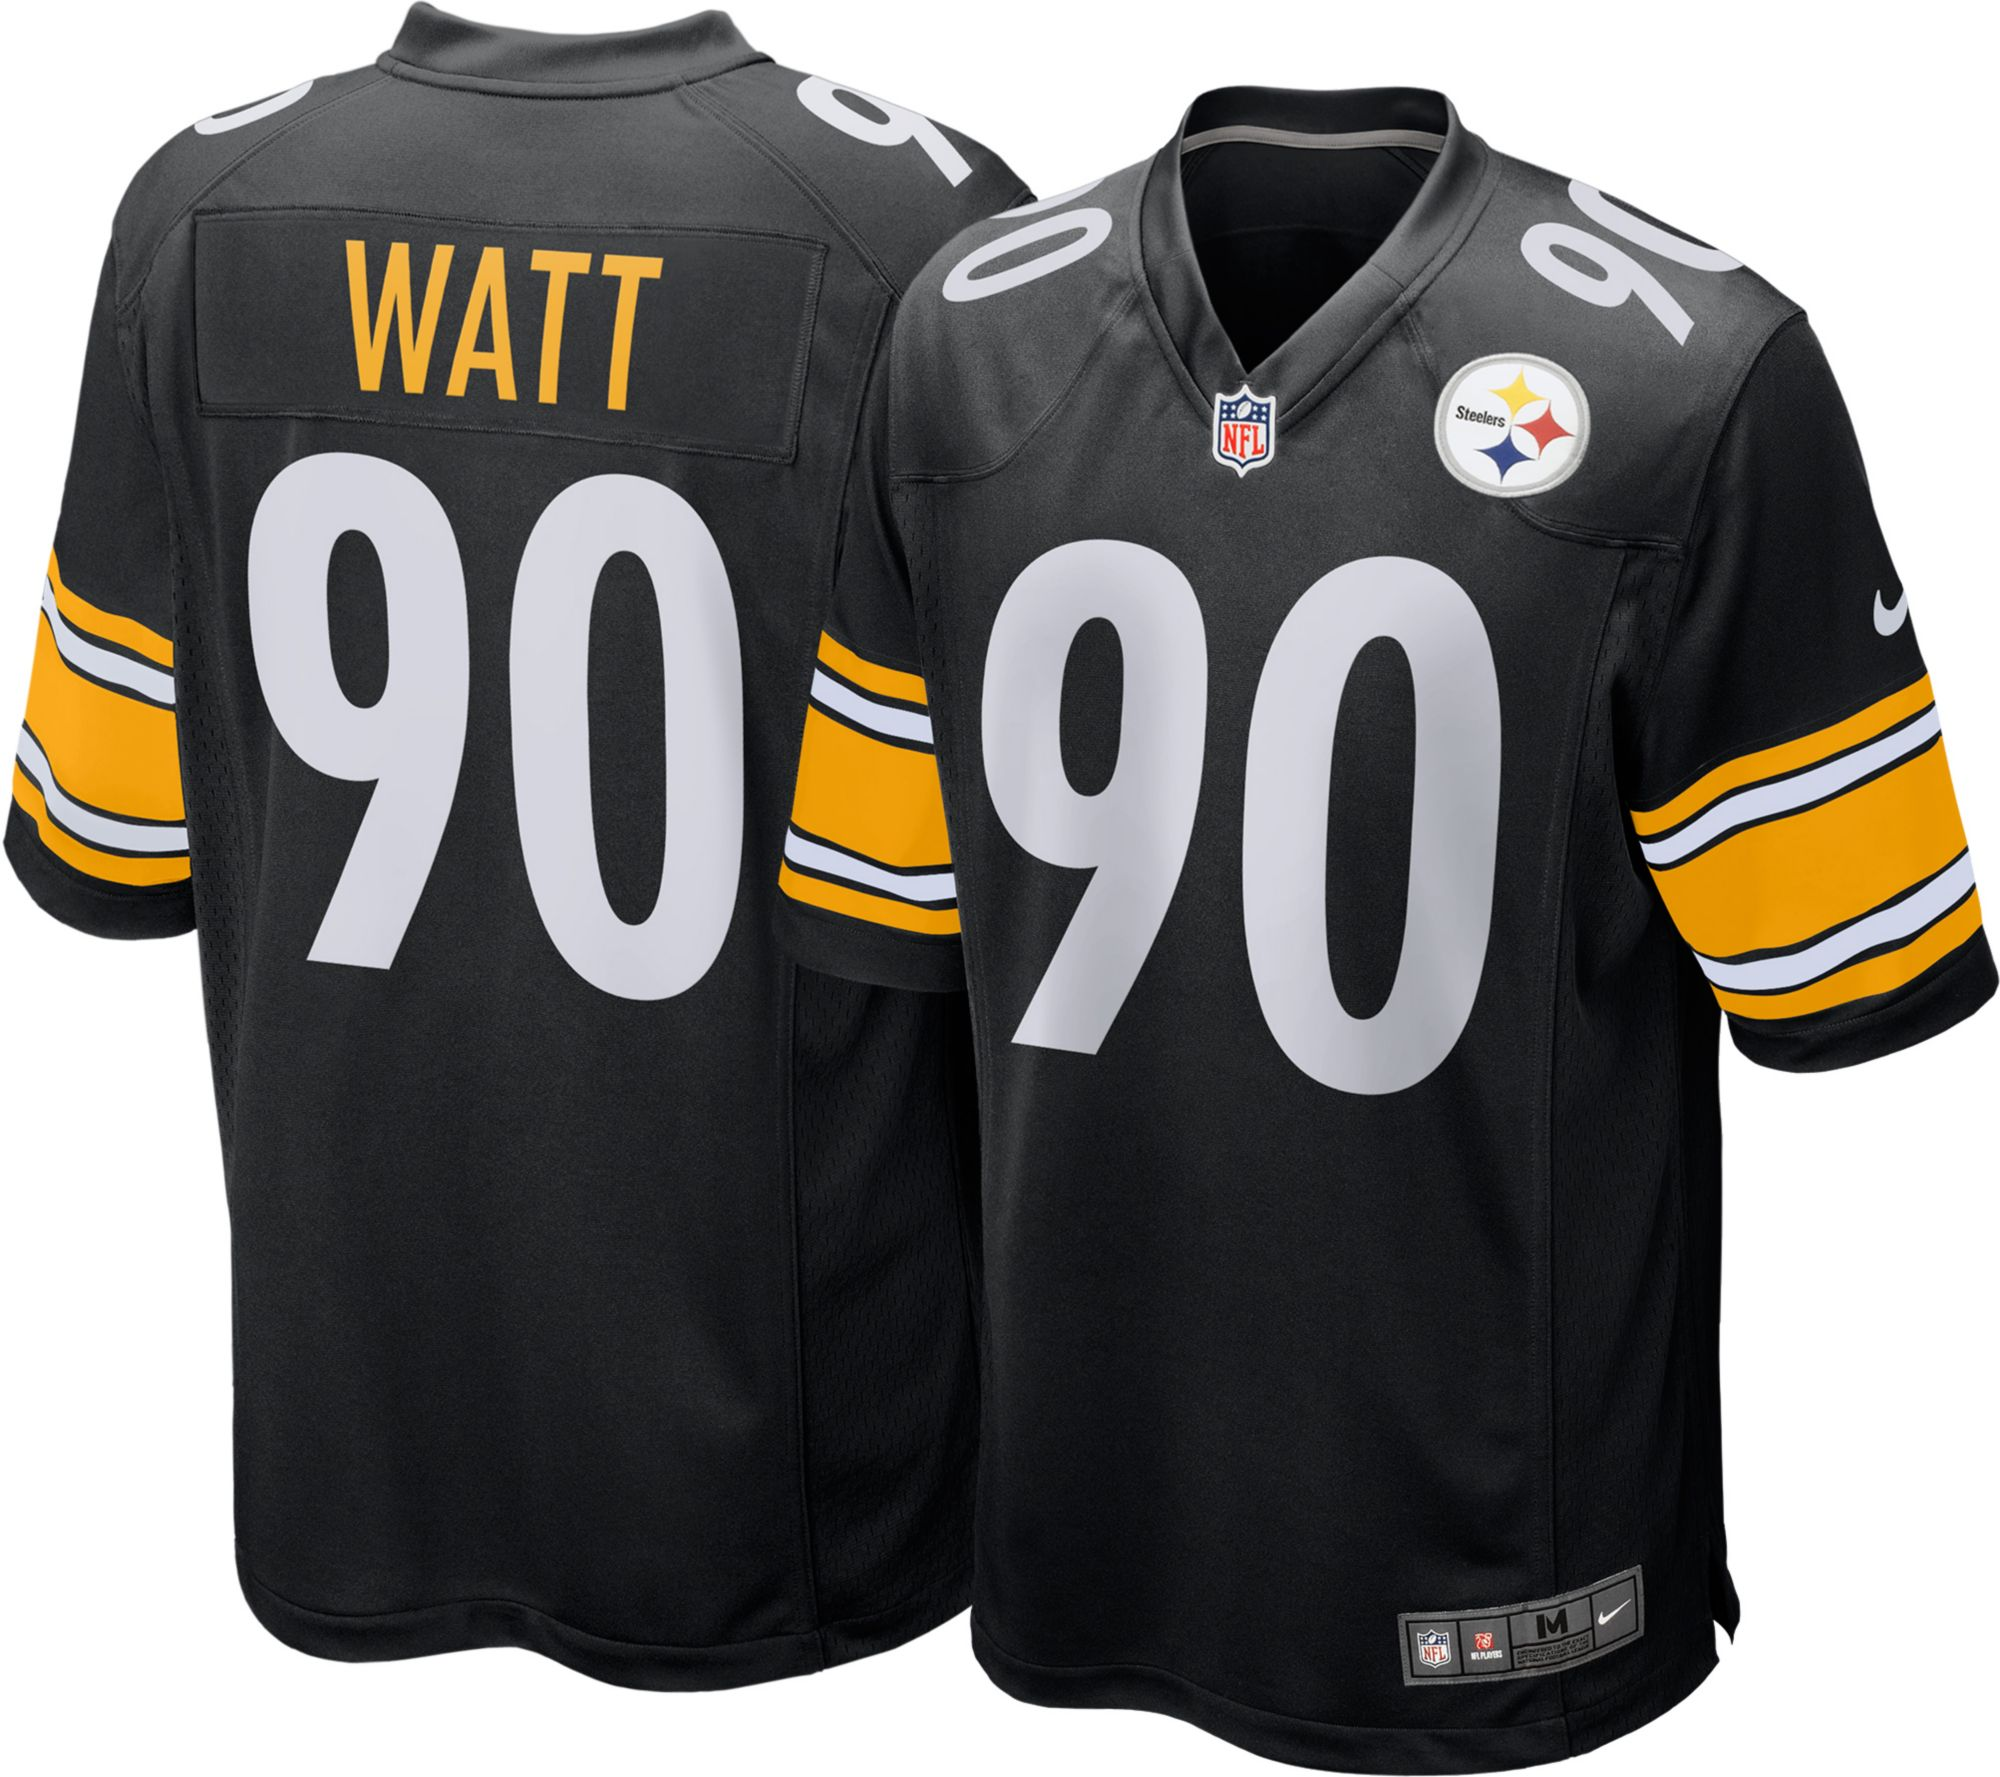 competitive price 256e2 8b5b3 steelers alternate jersey for sale